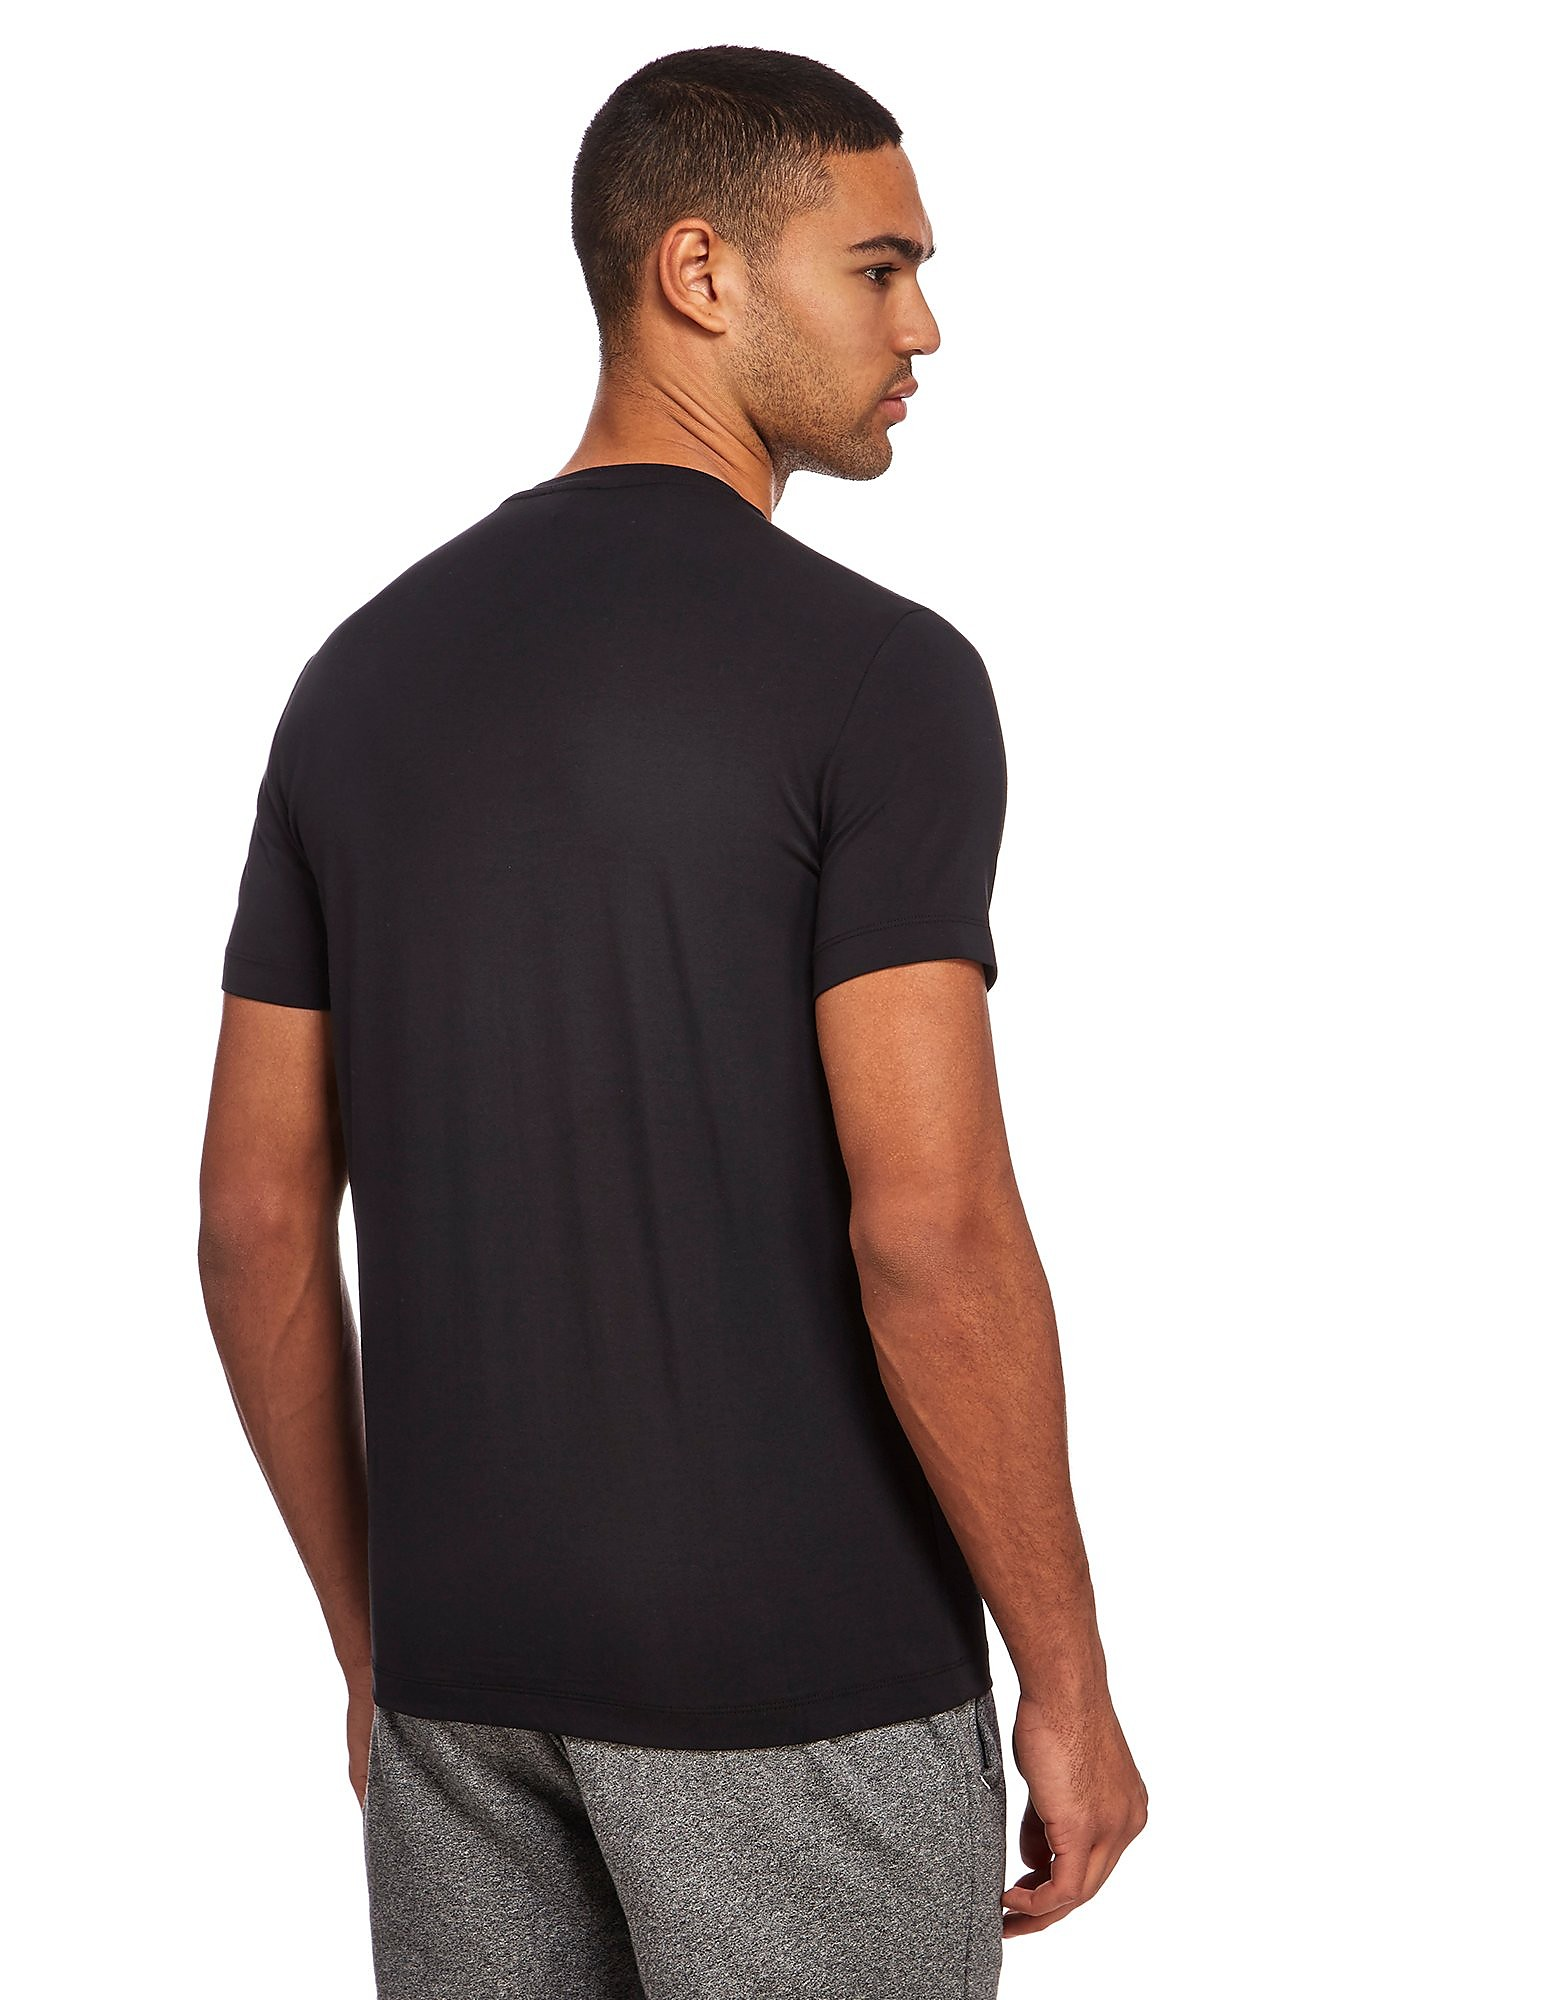 Emporio Armani EA7 Eagle UP T-Shirt